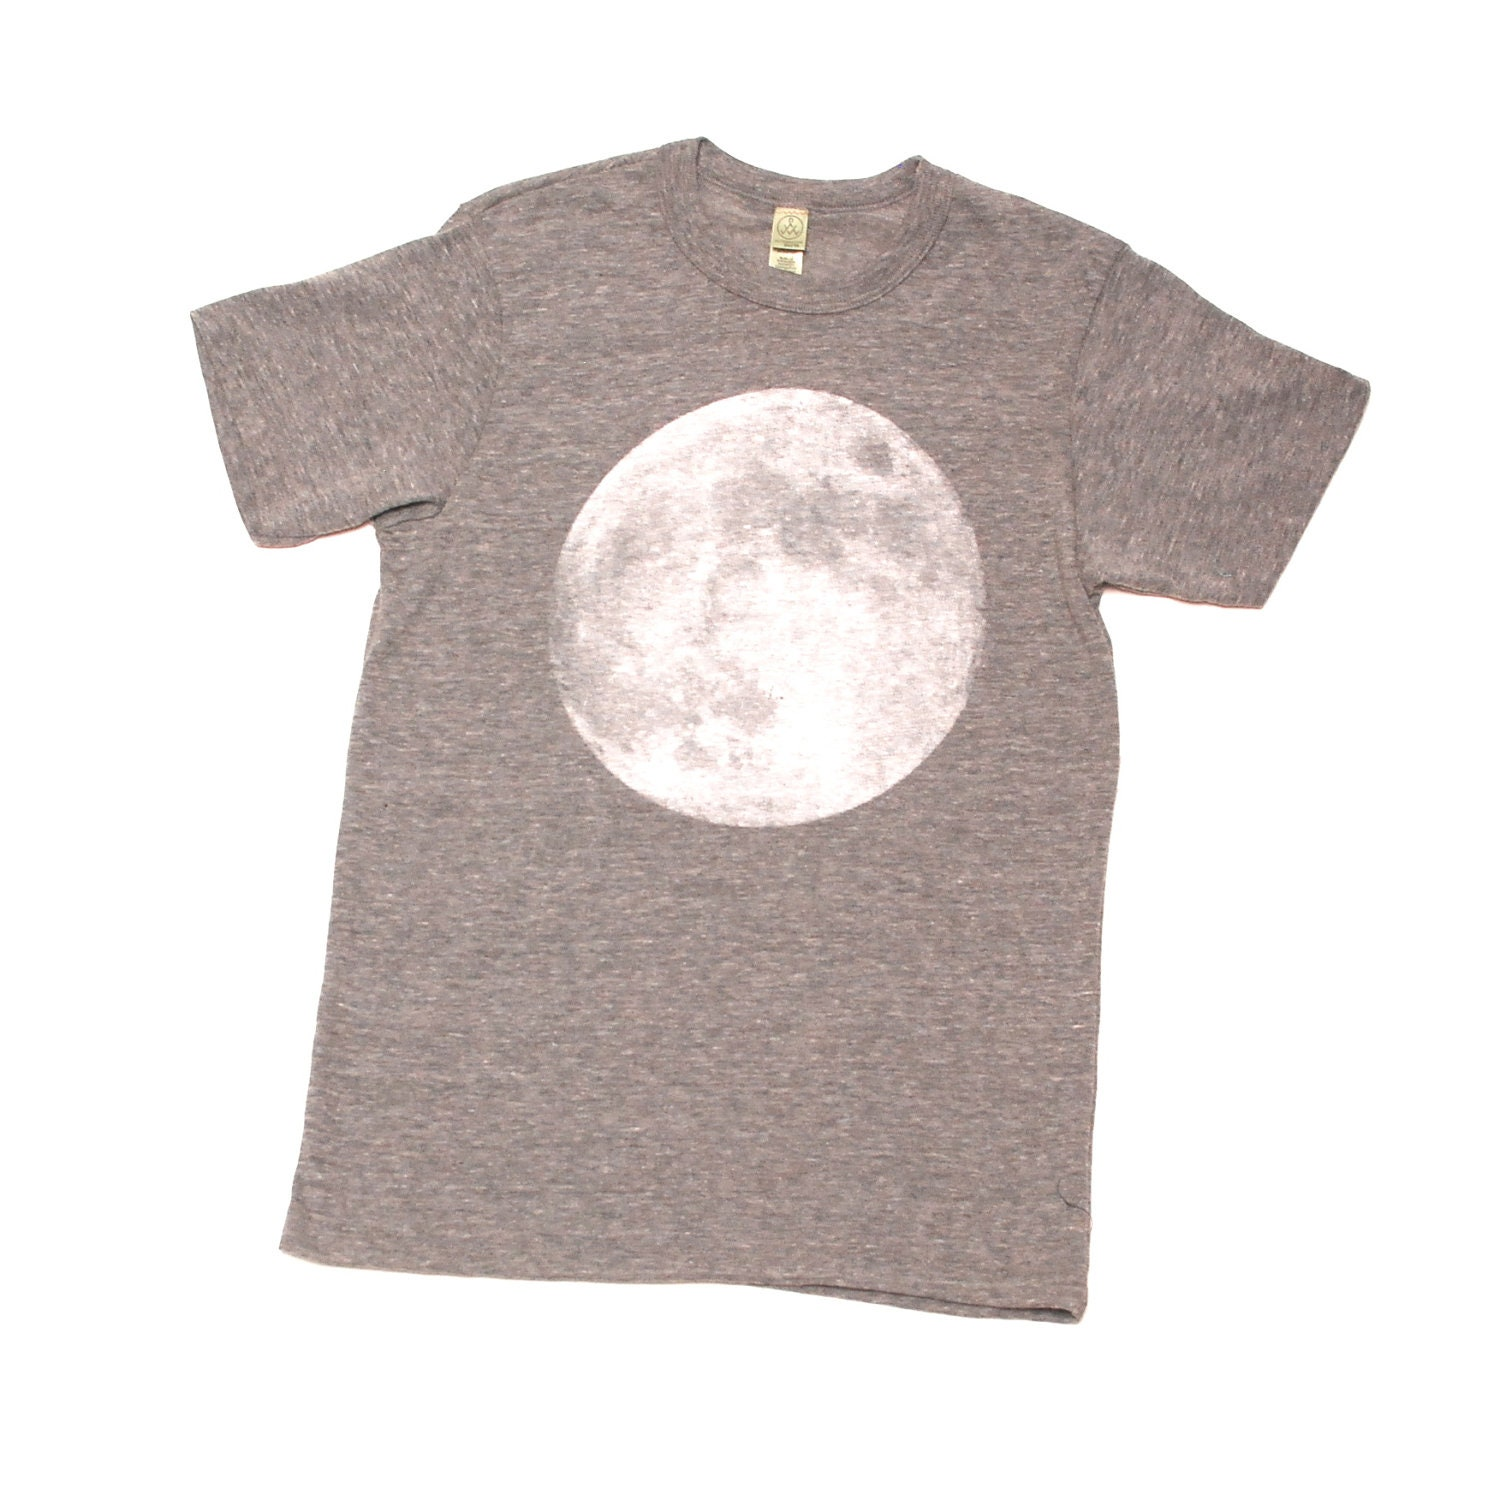 MOON heather grey SHIRT super SOFT unisex t shirt all sizes xs-xxl - TempleofCairo